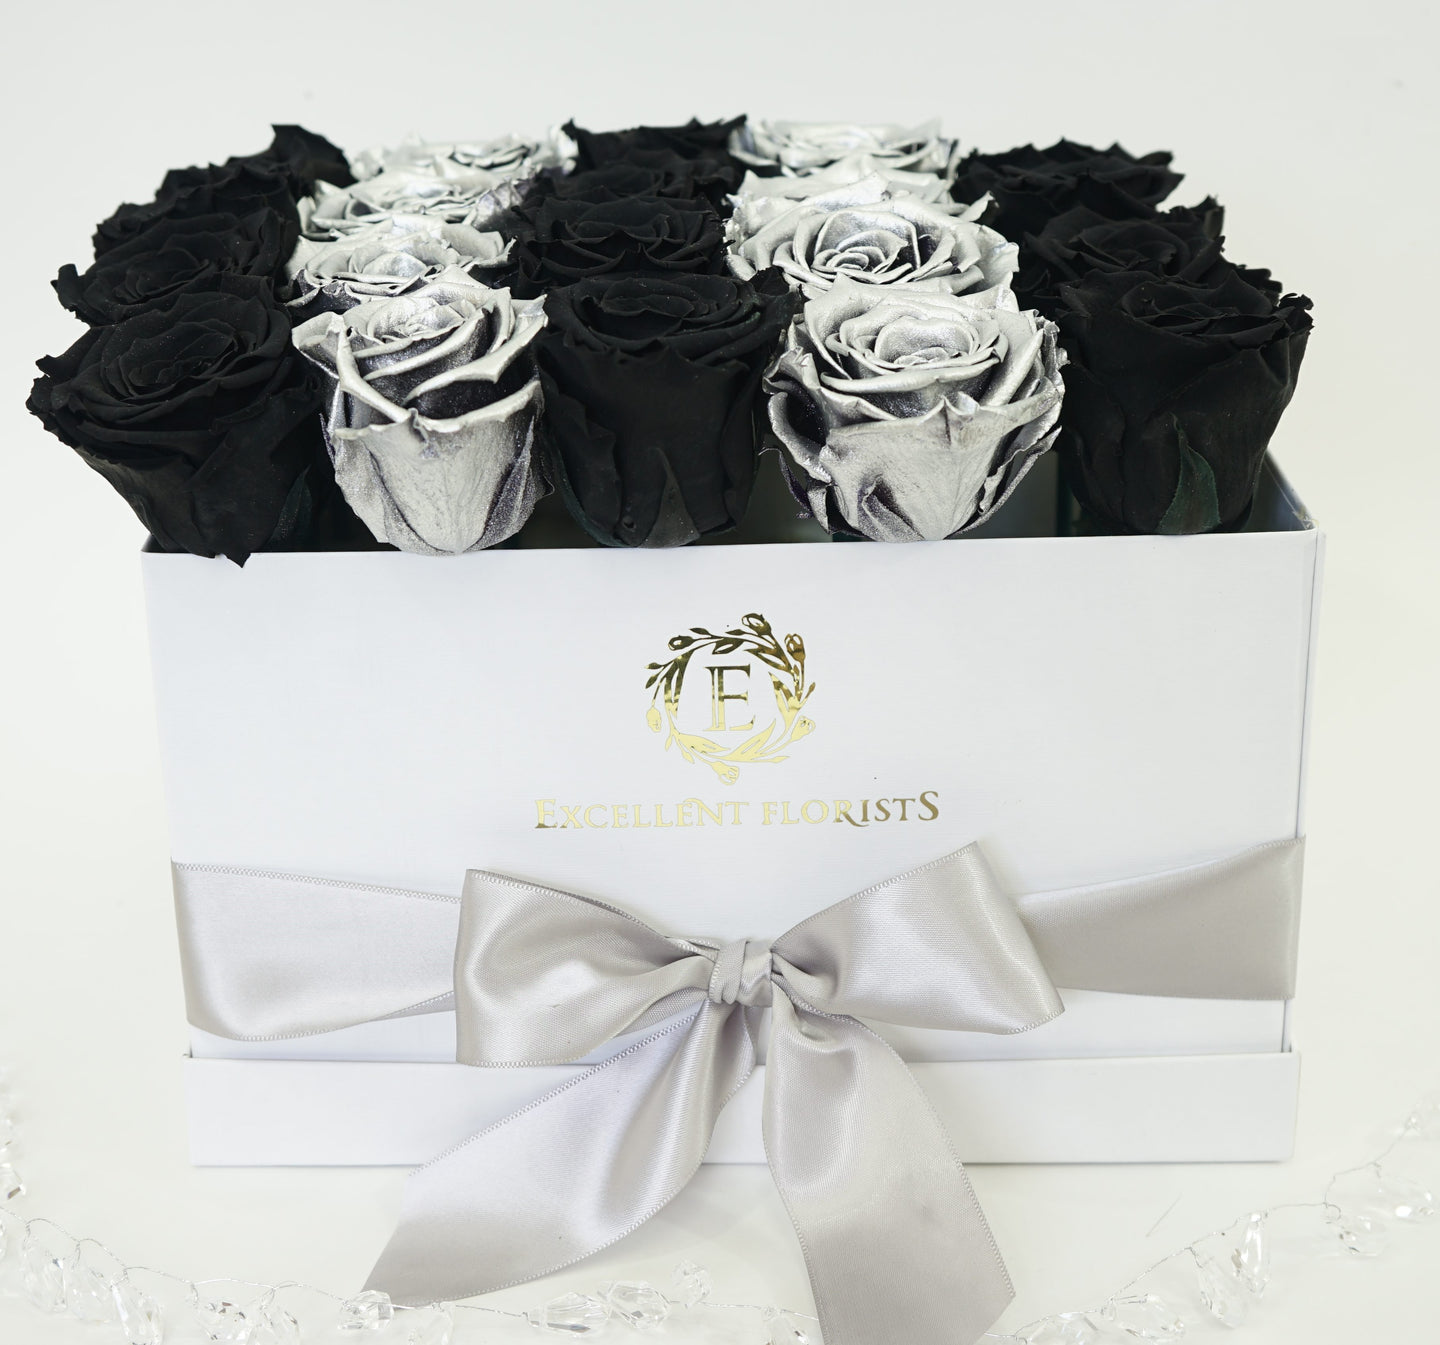 Medium Square Black and Silver Preserved Roses - Excellent Florists